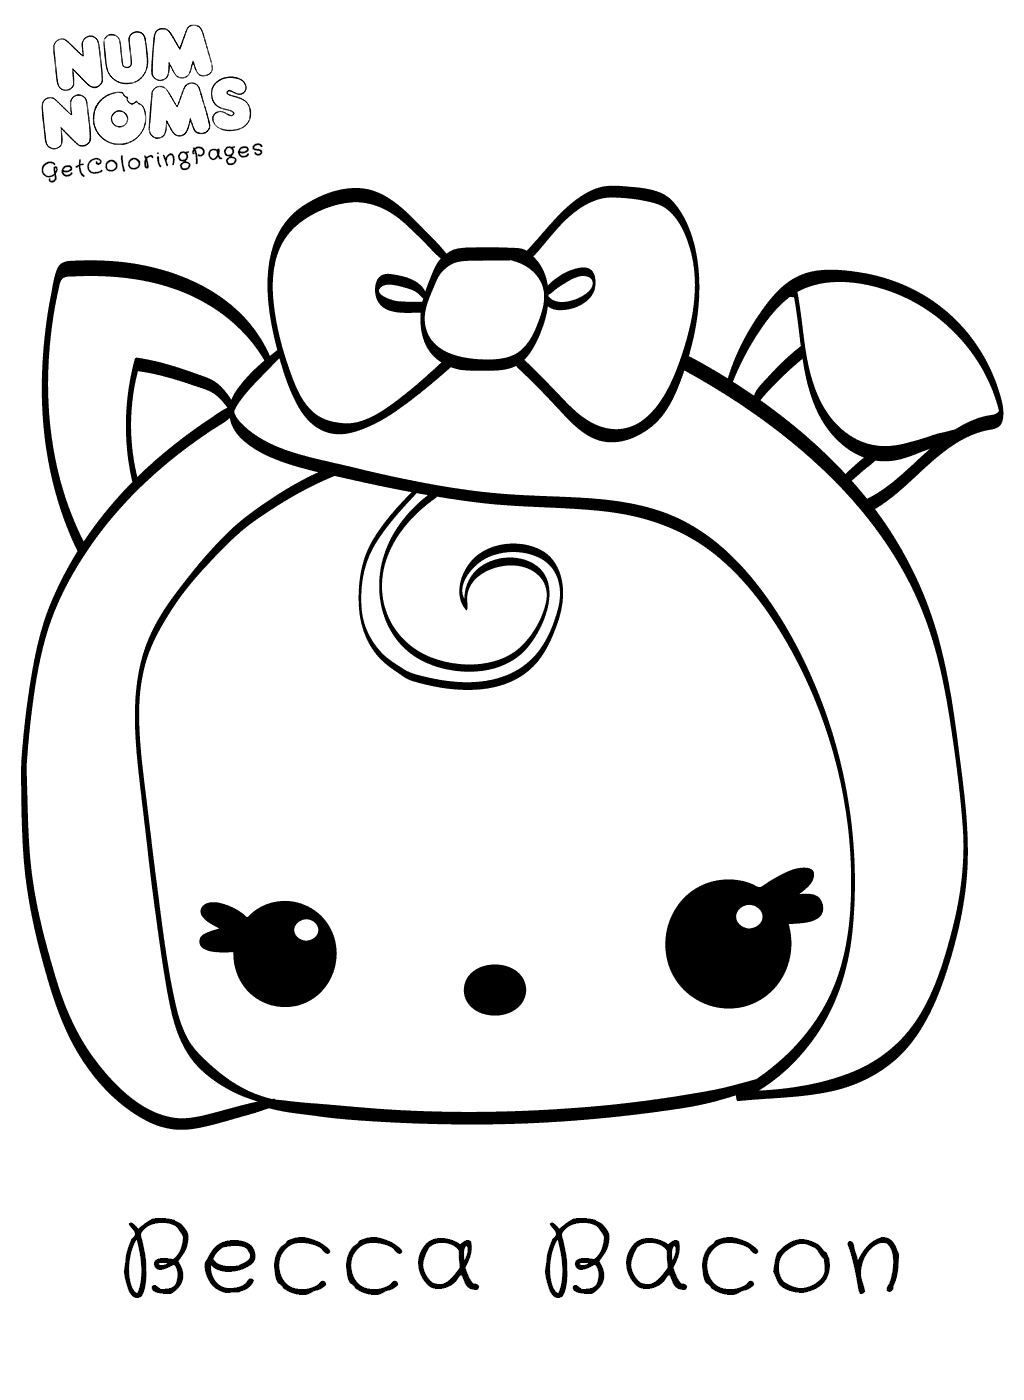 num noms coloring pages - cute kawaii food coloring pages sushi